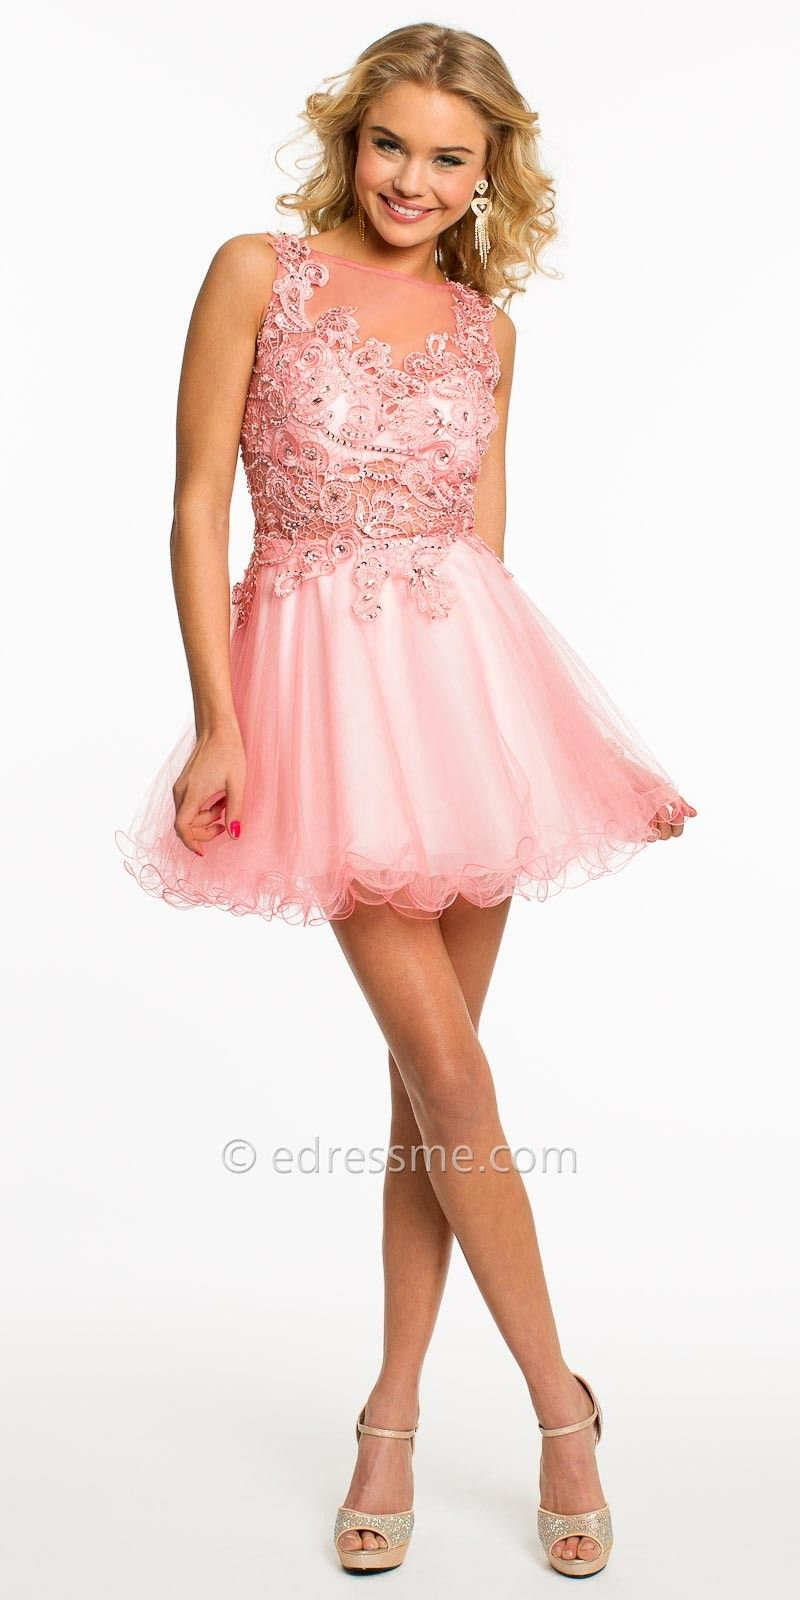 Short Skirt Prom Dresses